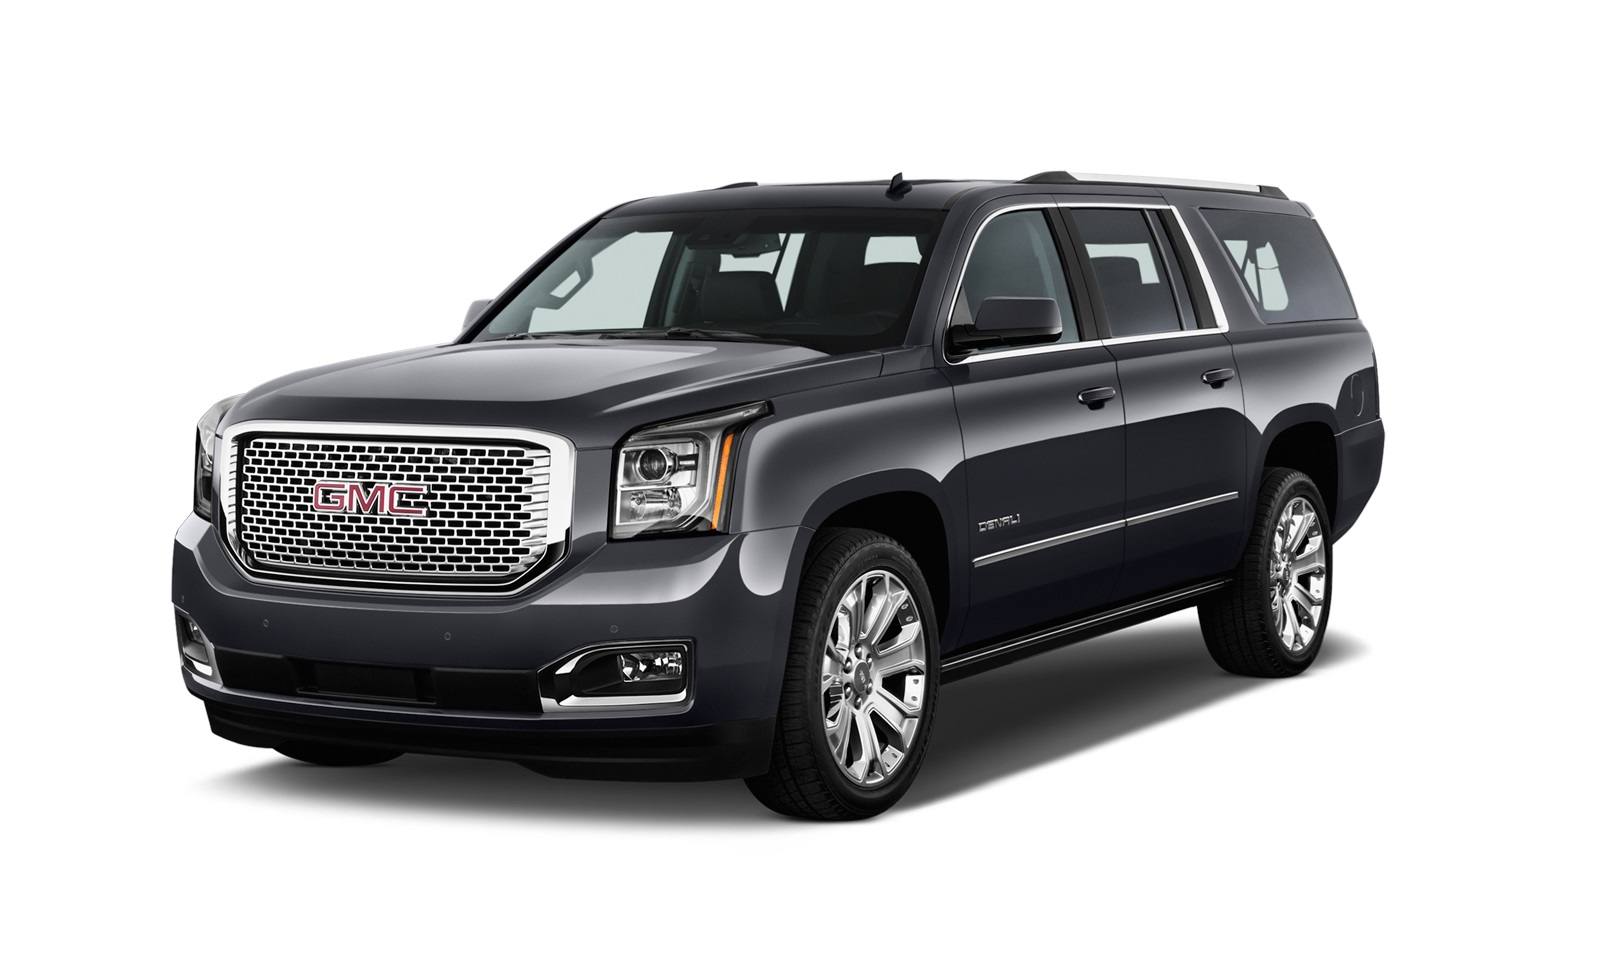 Gmc 2017 Yukon >> Car Pictures List for GMC Yukon XL Denali 2017 6.2L Denali (UAE) | YallaMotor